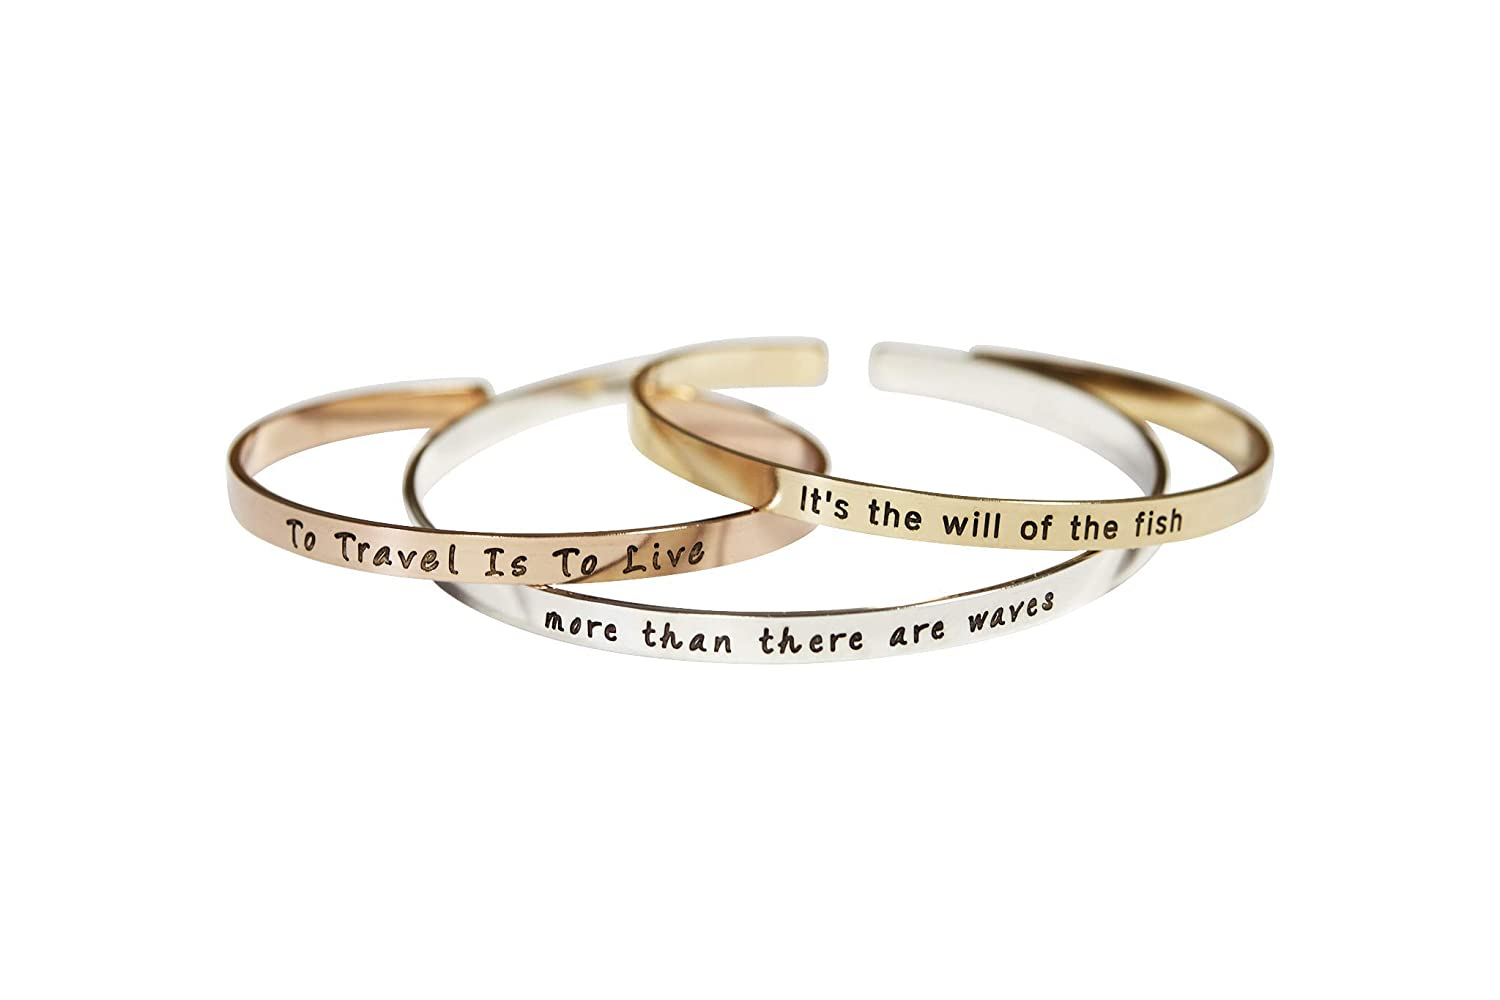 Manufacturer regenerated product Mantra Cuff Band Personalized security Inspirational Bracelet